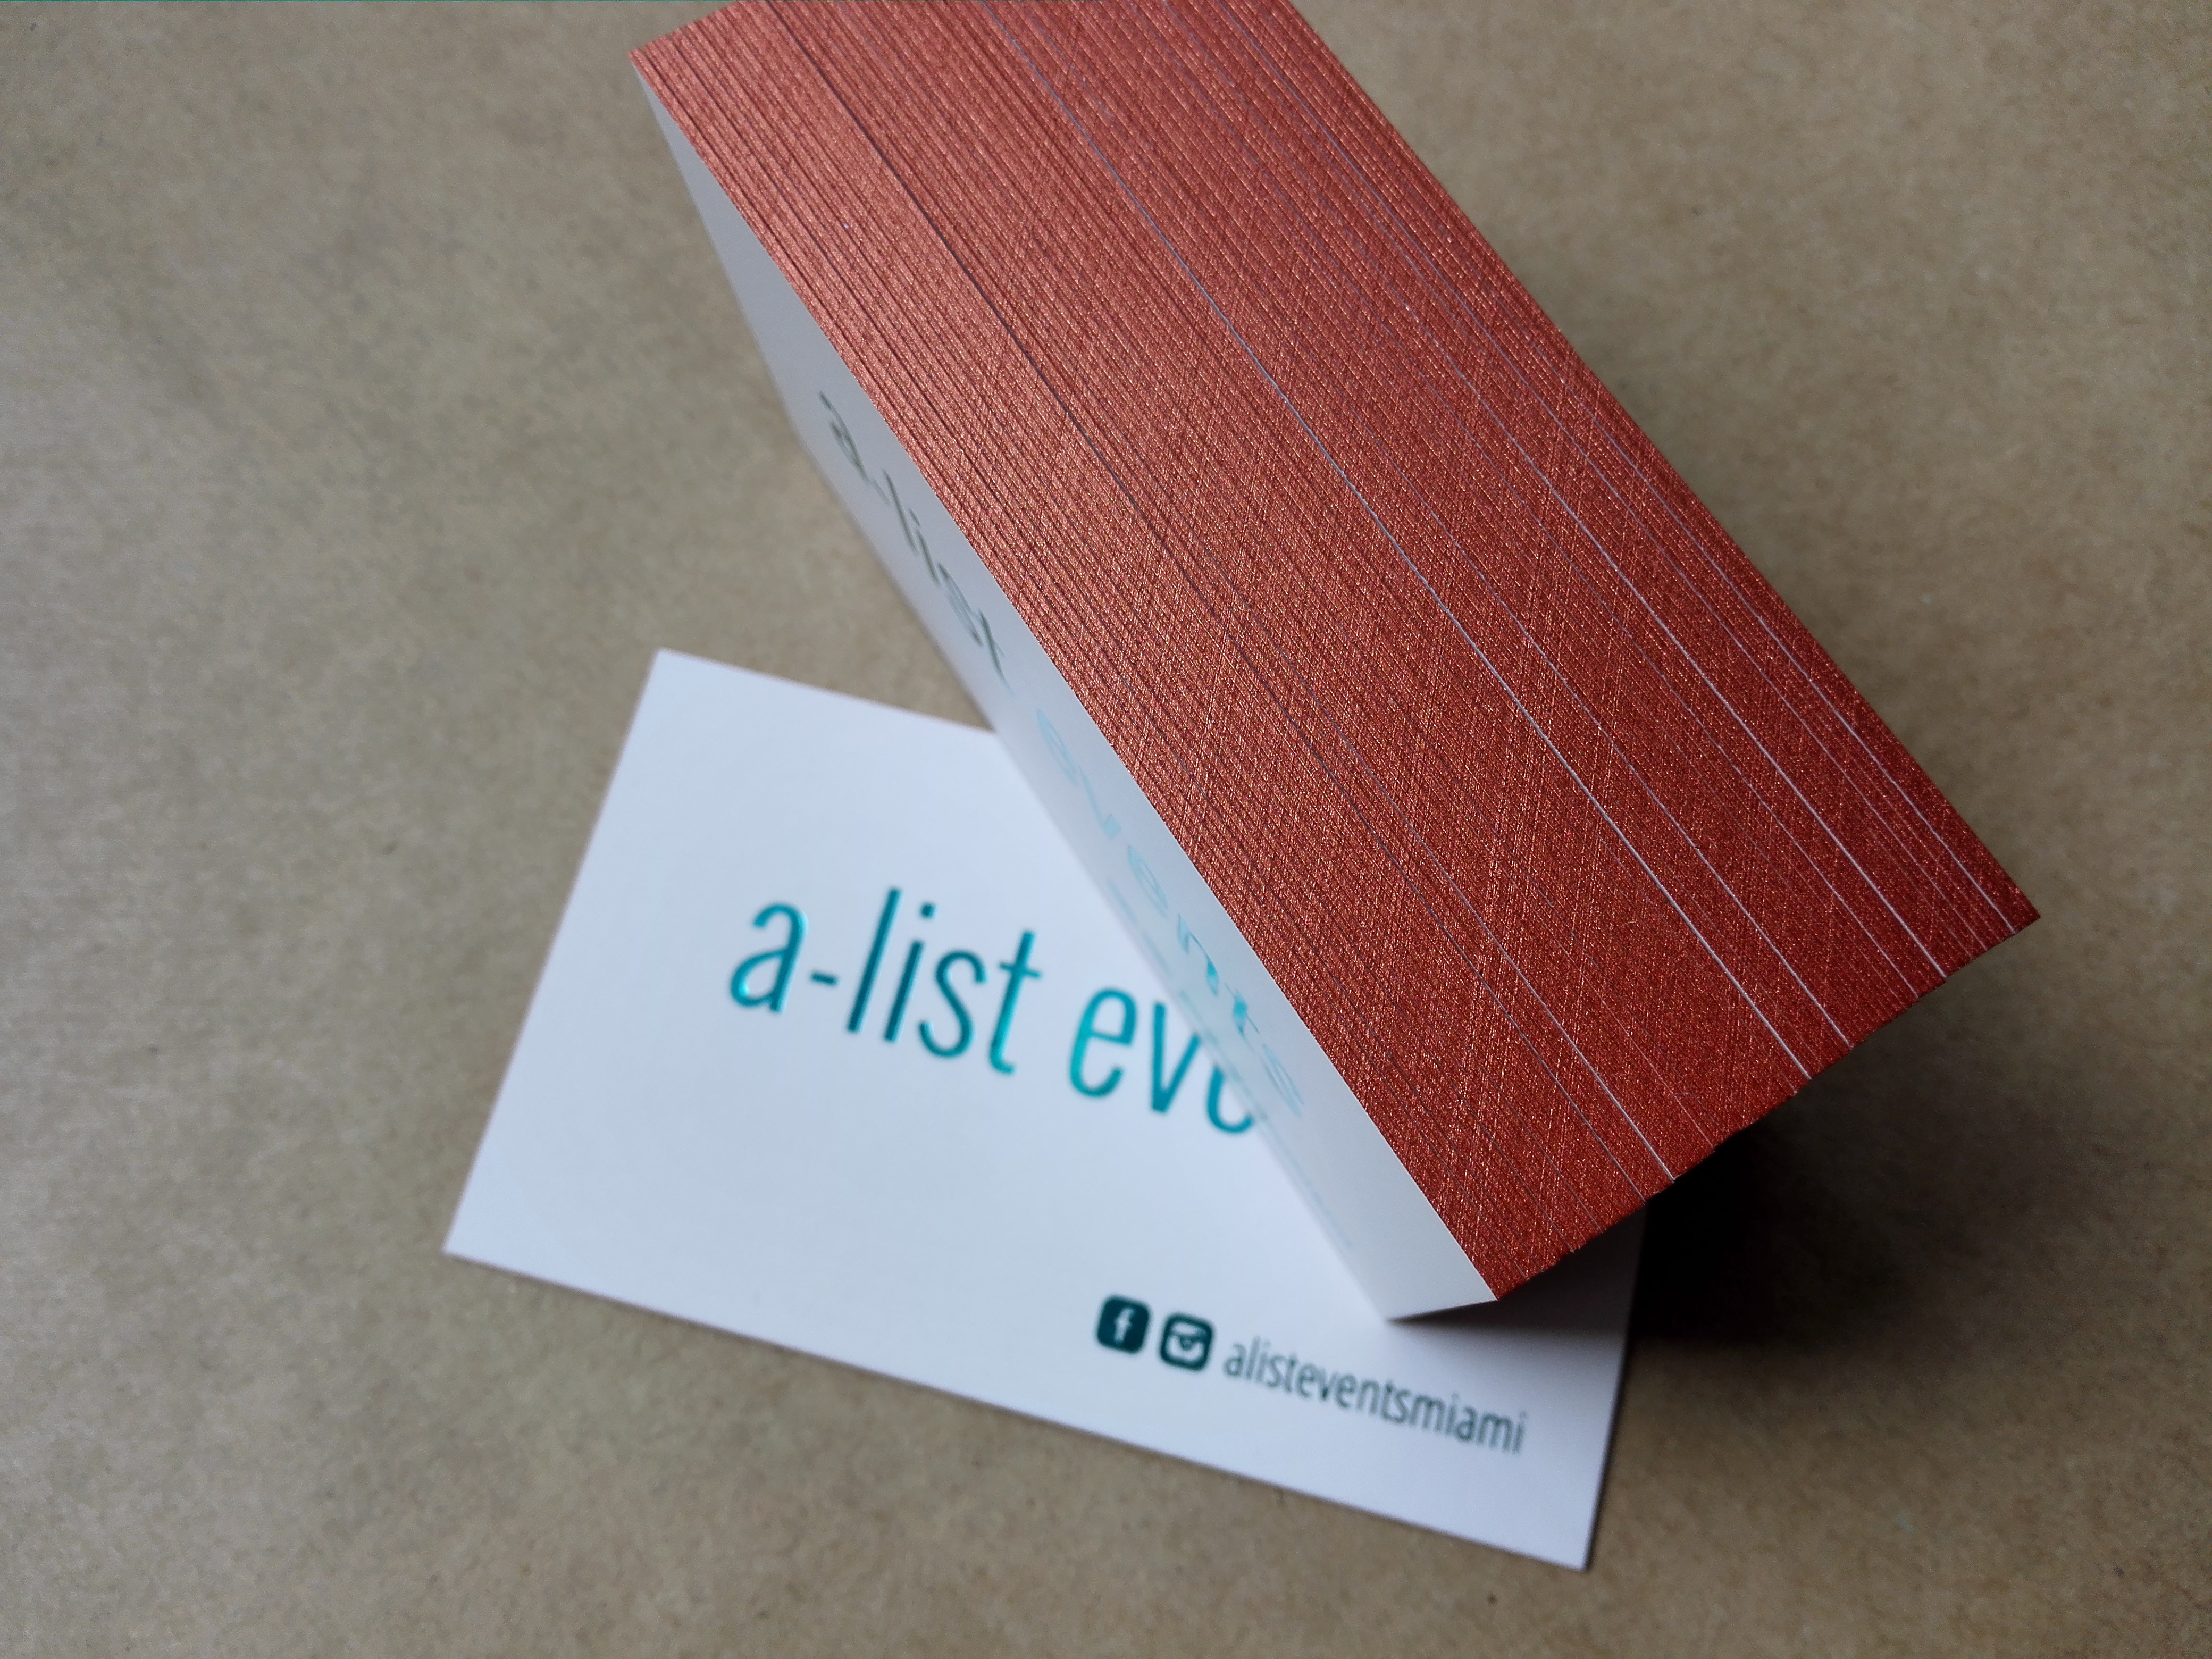 Spot UV Business Cards   Make Your Brand More Eye-Catching ...